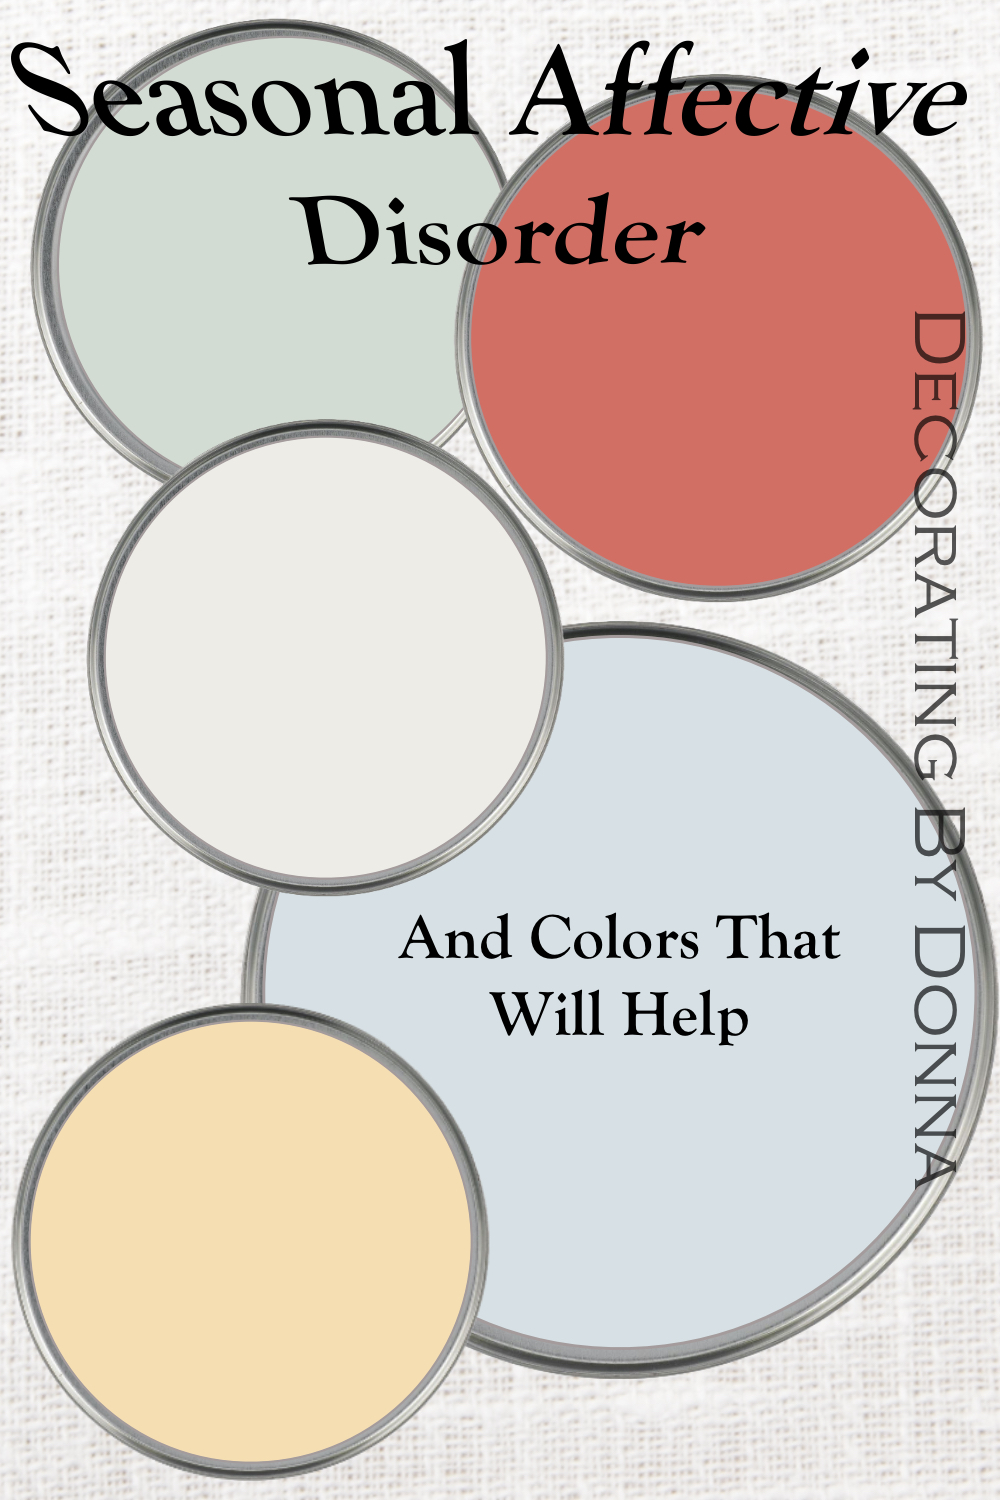 colors that will help seasonal affective disorder